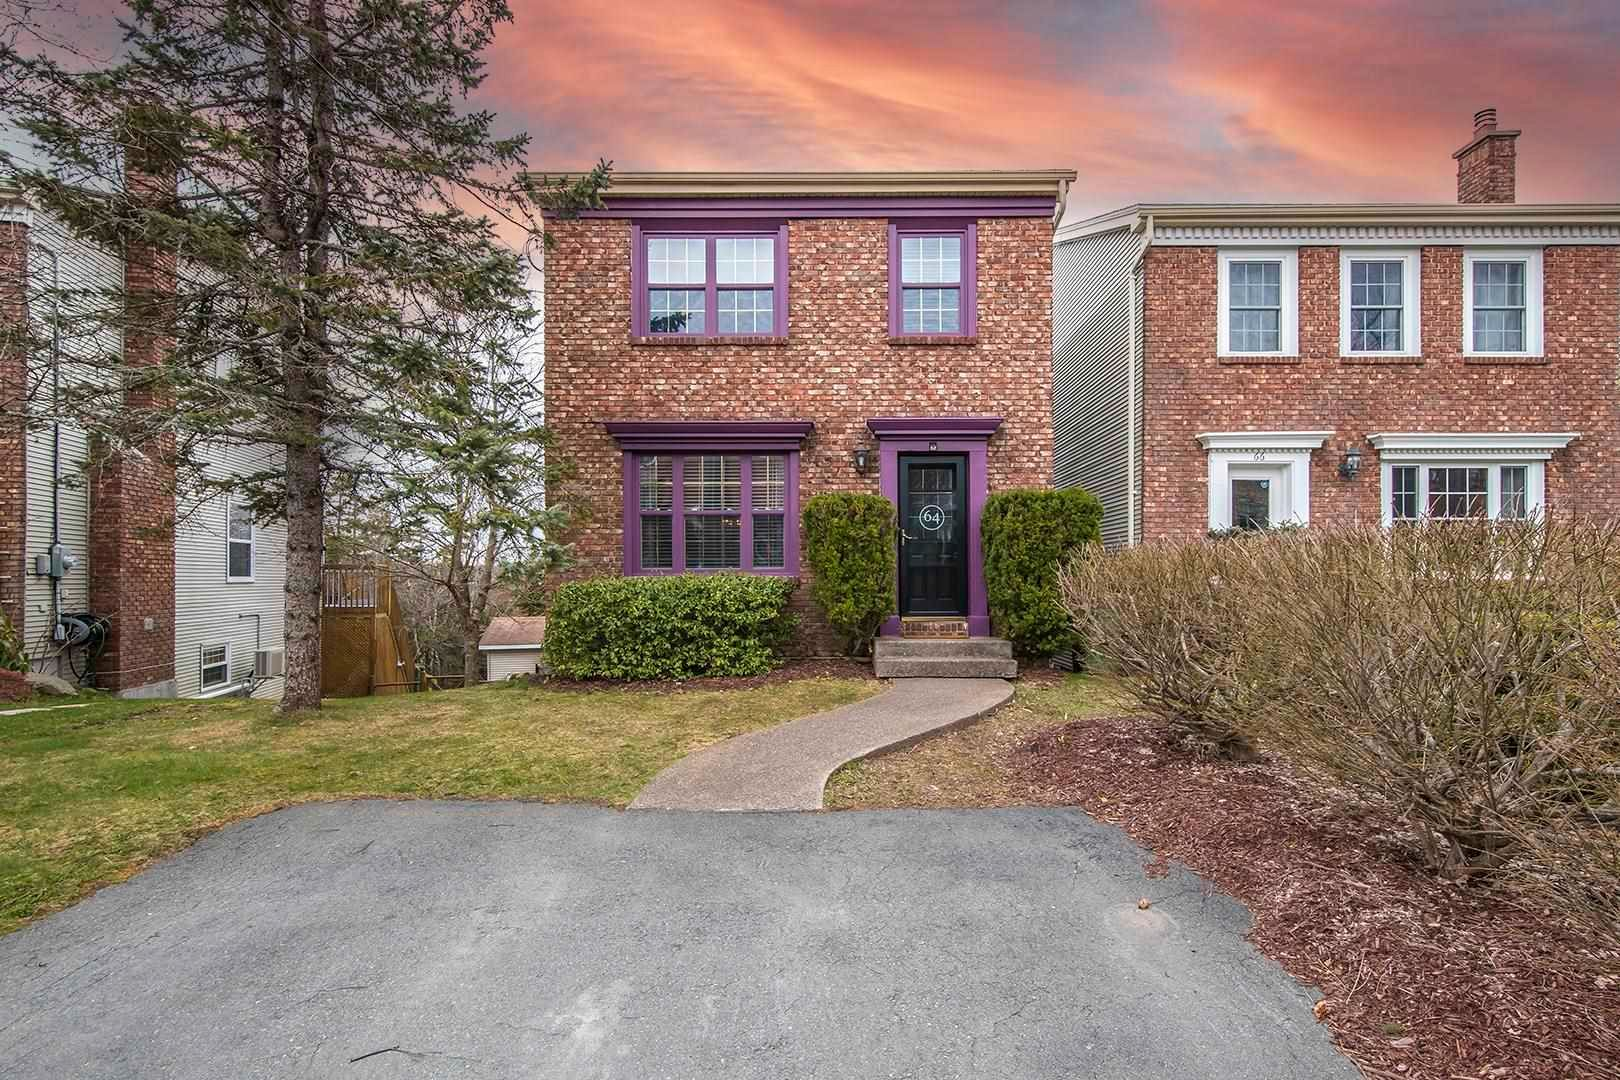 Photo 1: Photos: 64 Roy Crescent in Bedford: 20-Bedford Residential for sale (Halifax-Dartmouth)  : MLS®# 202110846